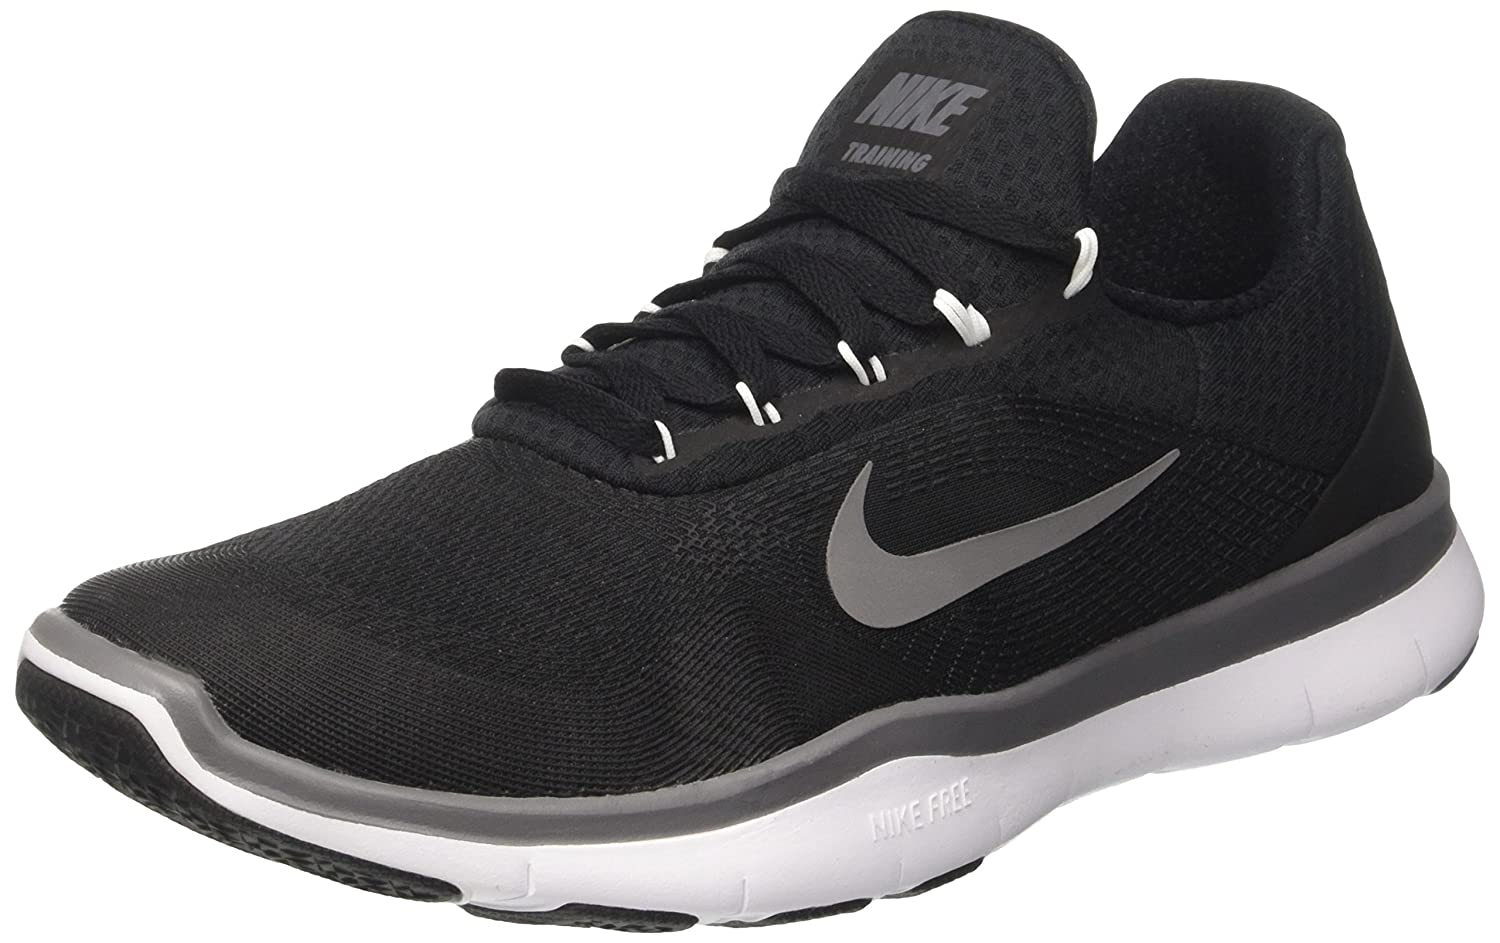 daaf939223bd Nike Mens Free Trainer V7 Training Shoes Black White Dark Grey 898053-003  Size 10. 5  Buy Online at Low Prices in India - Amazon.in